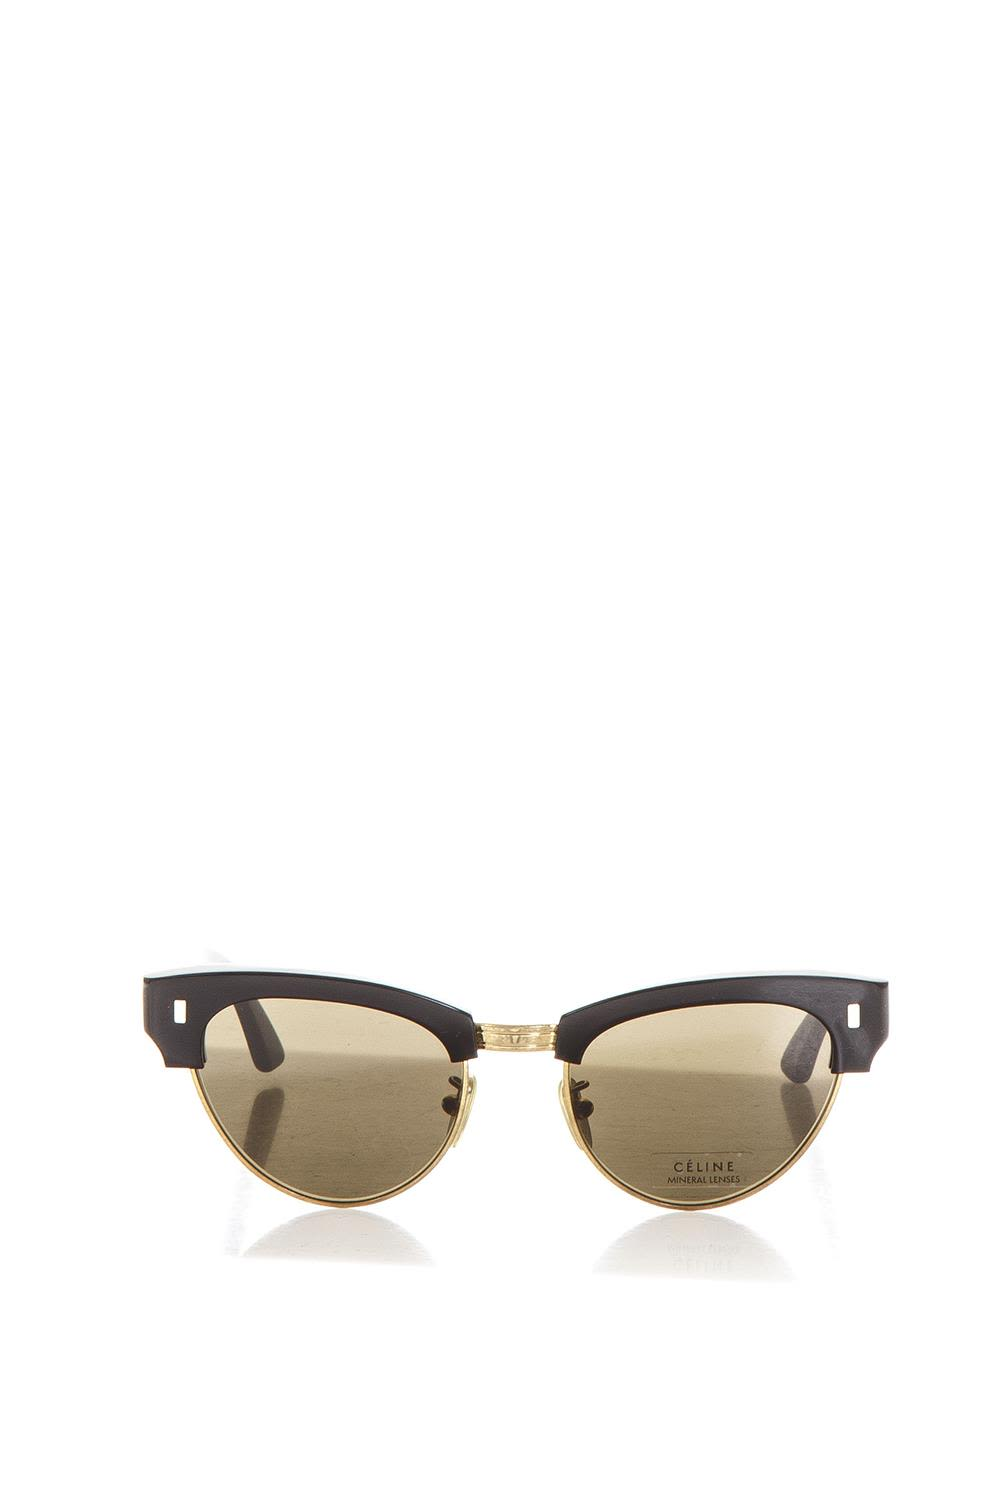 CELINE ROUND SUNGLASSES IN ACETATE WITH MINERAL GLASS LENSES